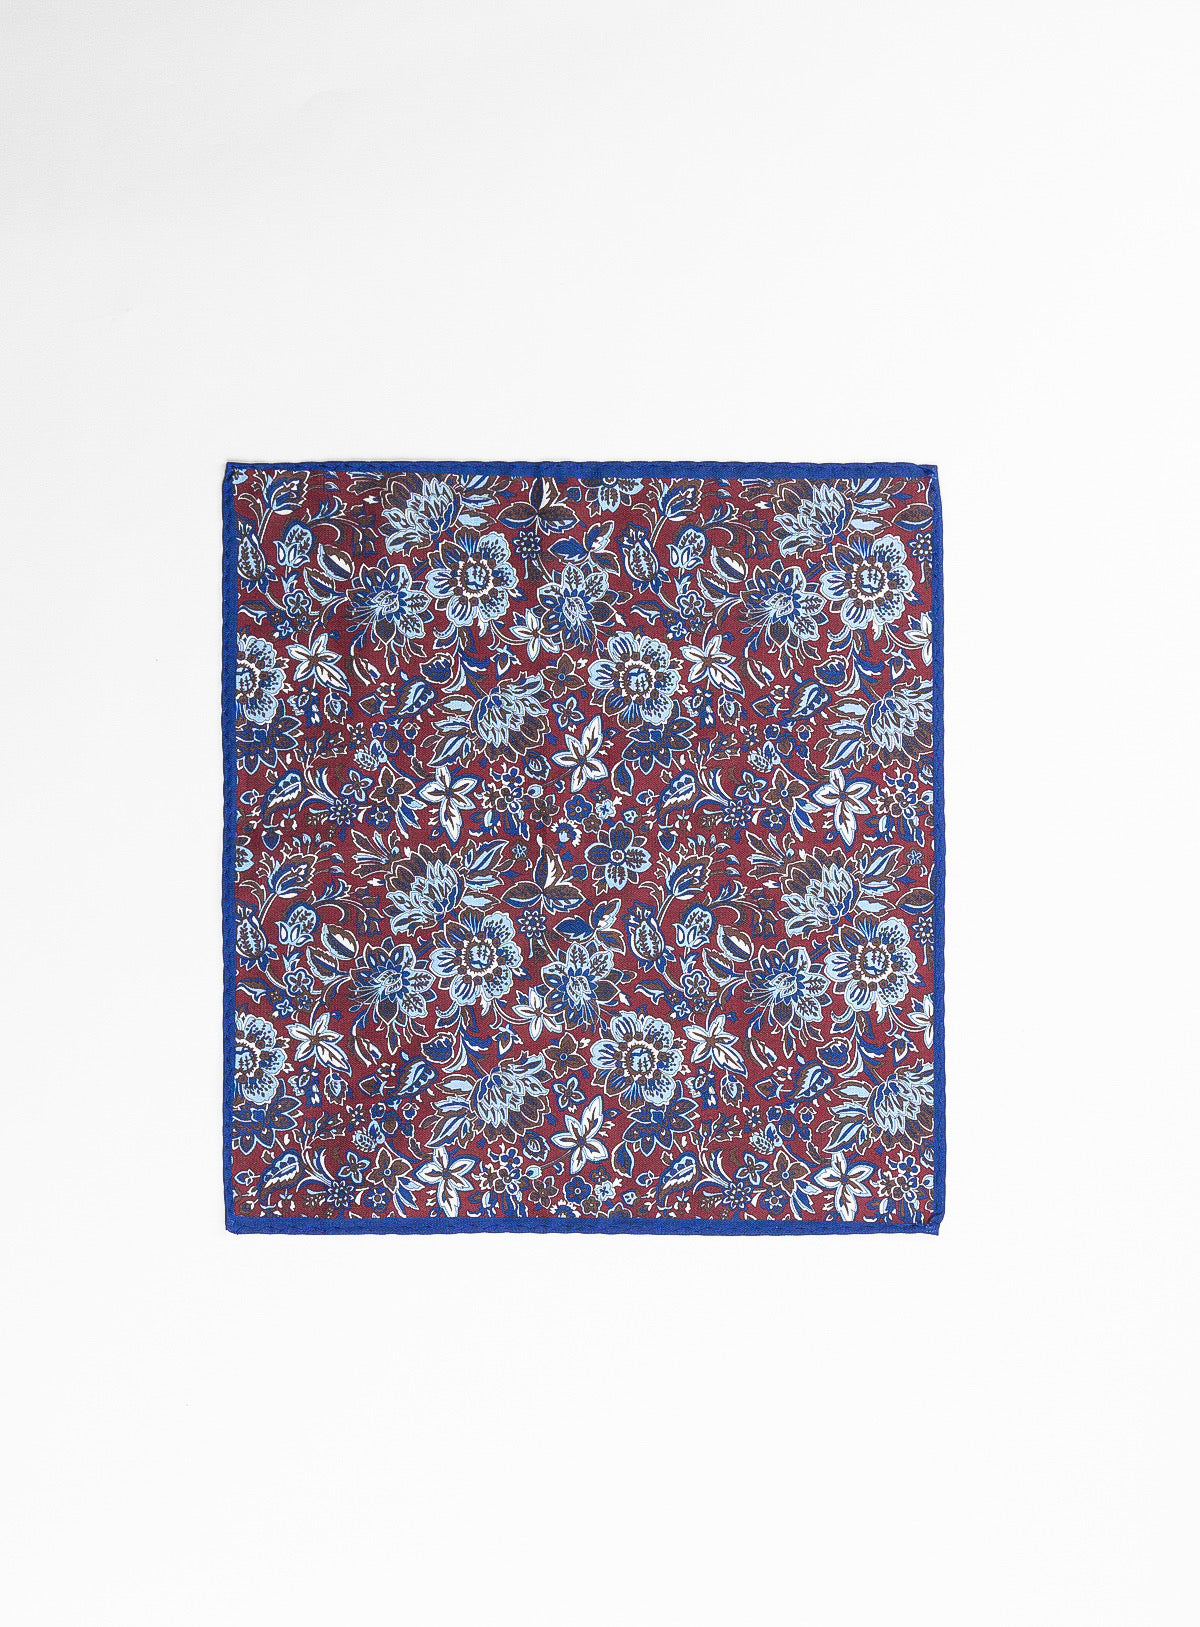 fushia flowers pocket square - anthony of london -raspberry